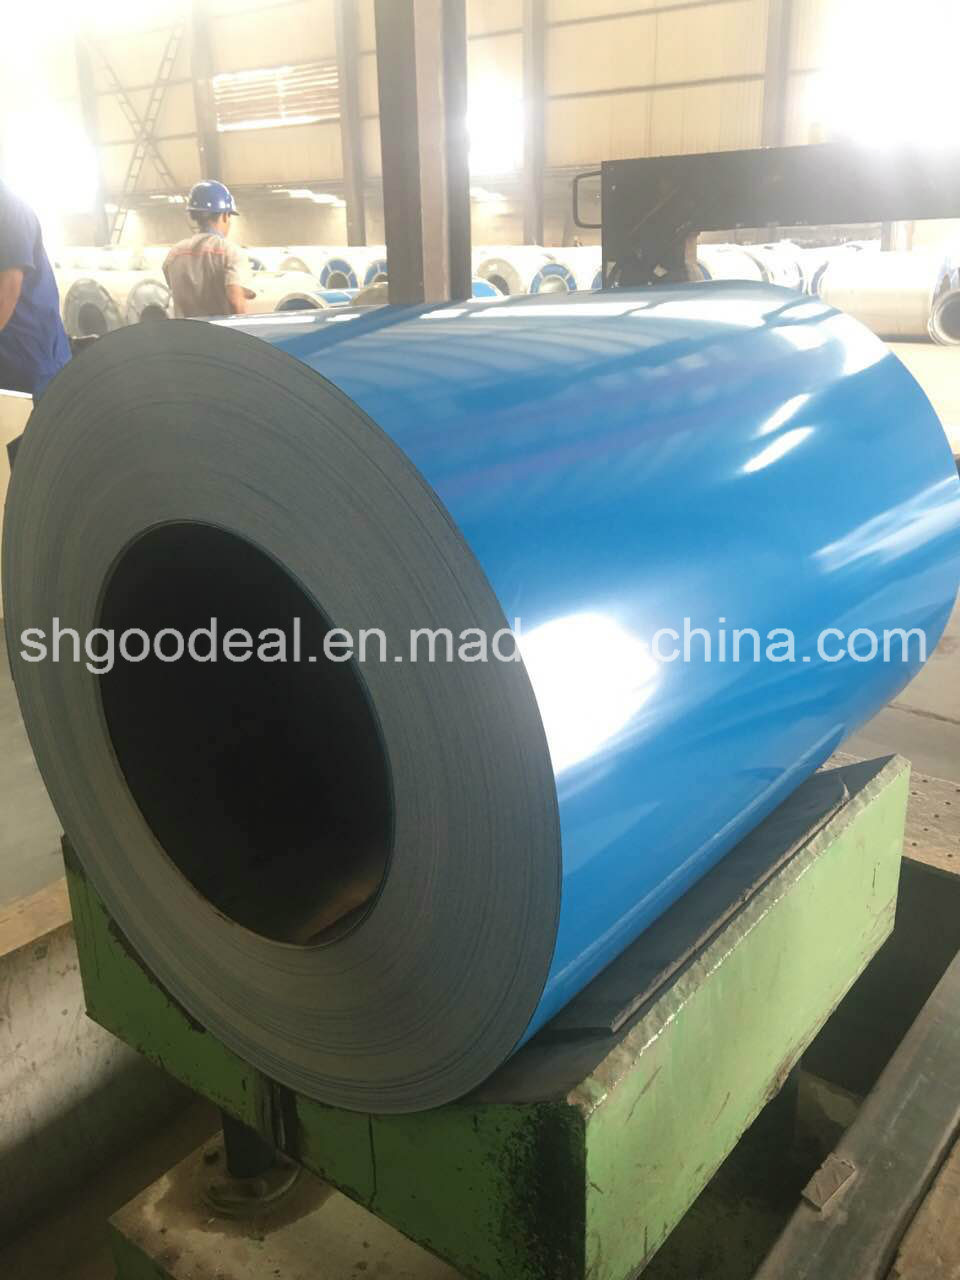 0.12-0.80mm Thickness Pre-Painted Galvanized Steel Coils/PPGI for Coorrugated Roofing Sheet